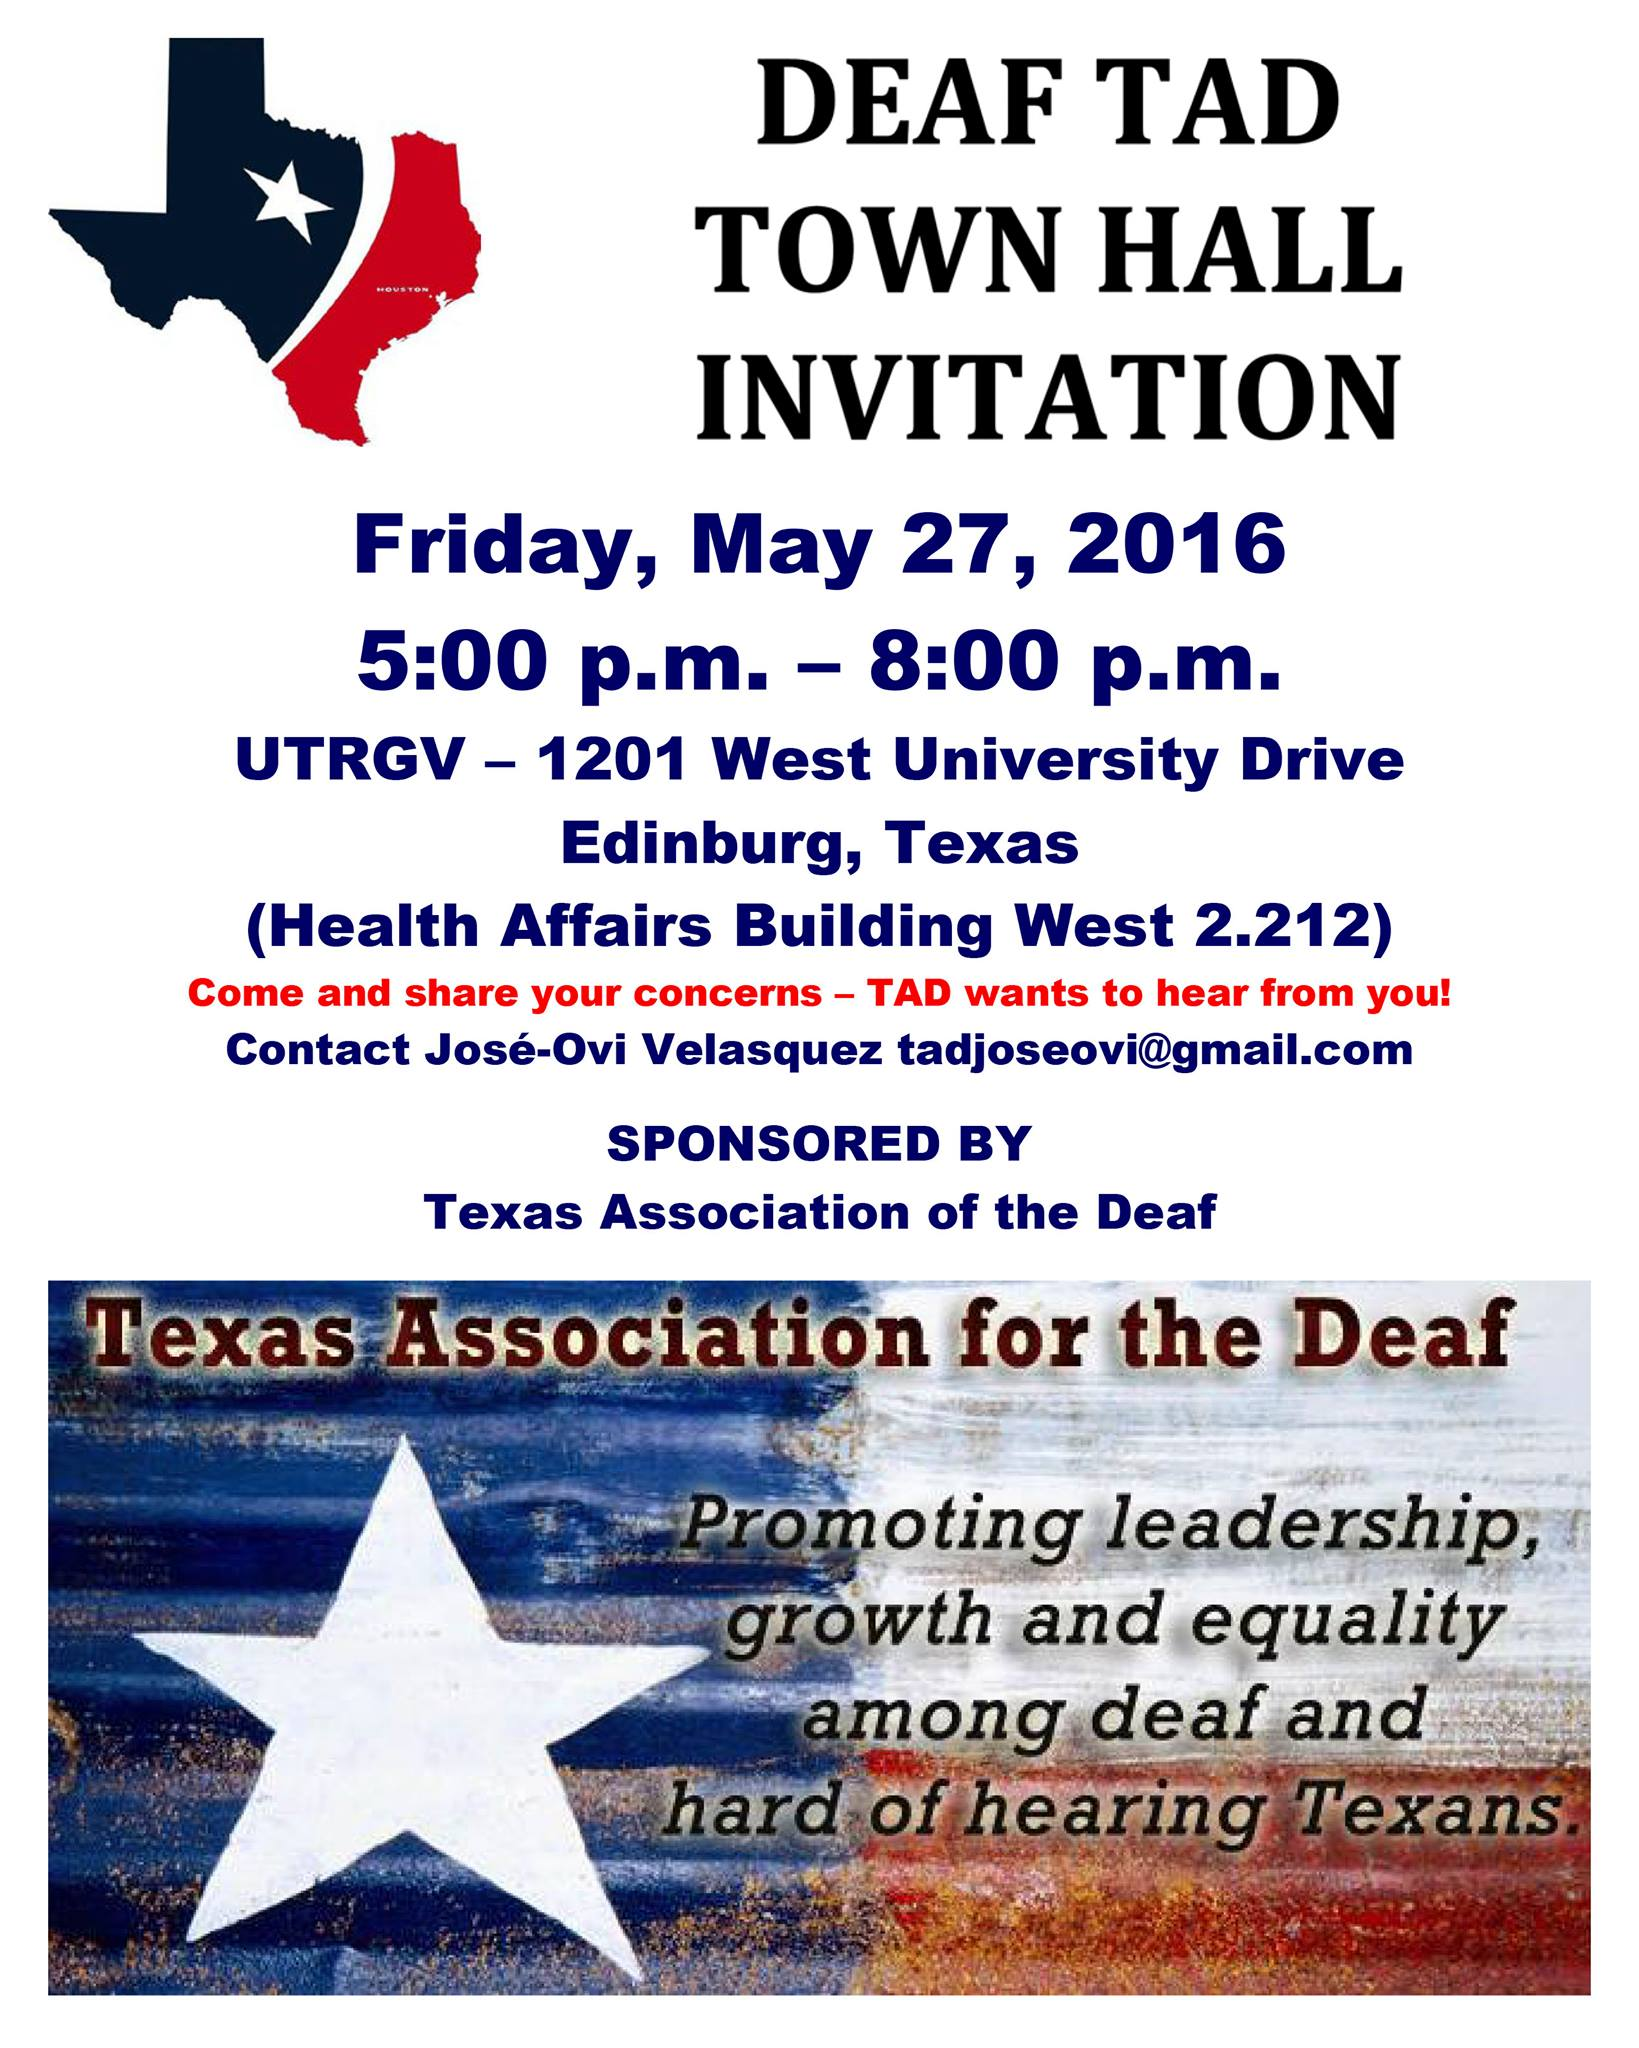 Tad Town Hall Invitation 5 27 16 Edinburg Texas Deaf Network Of